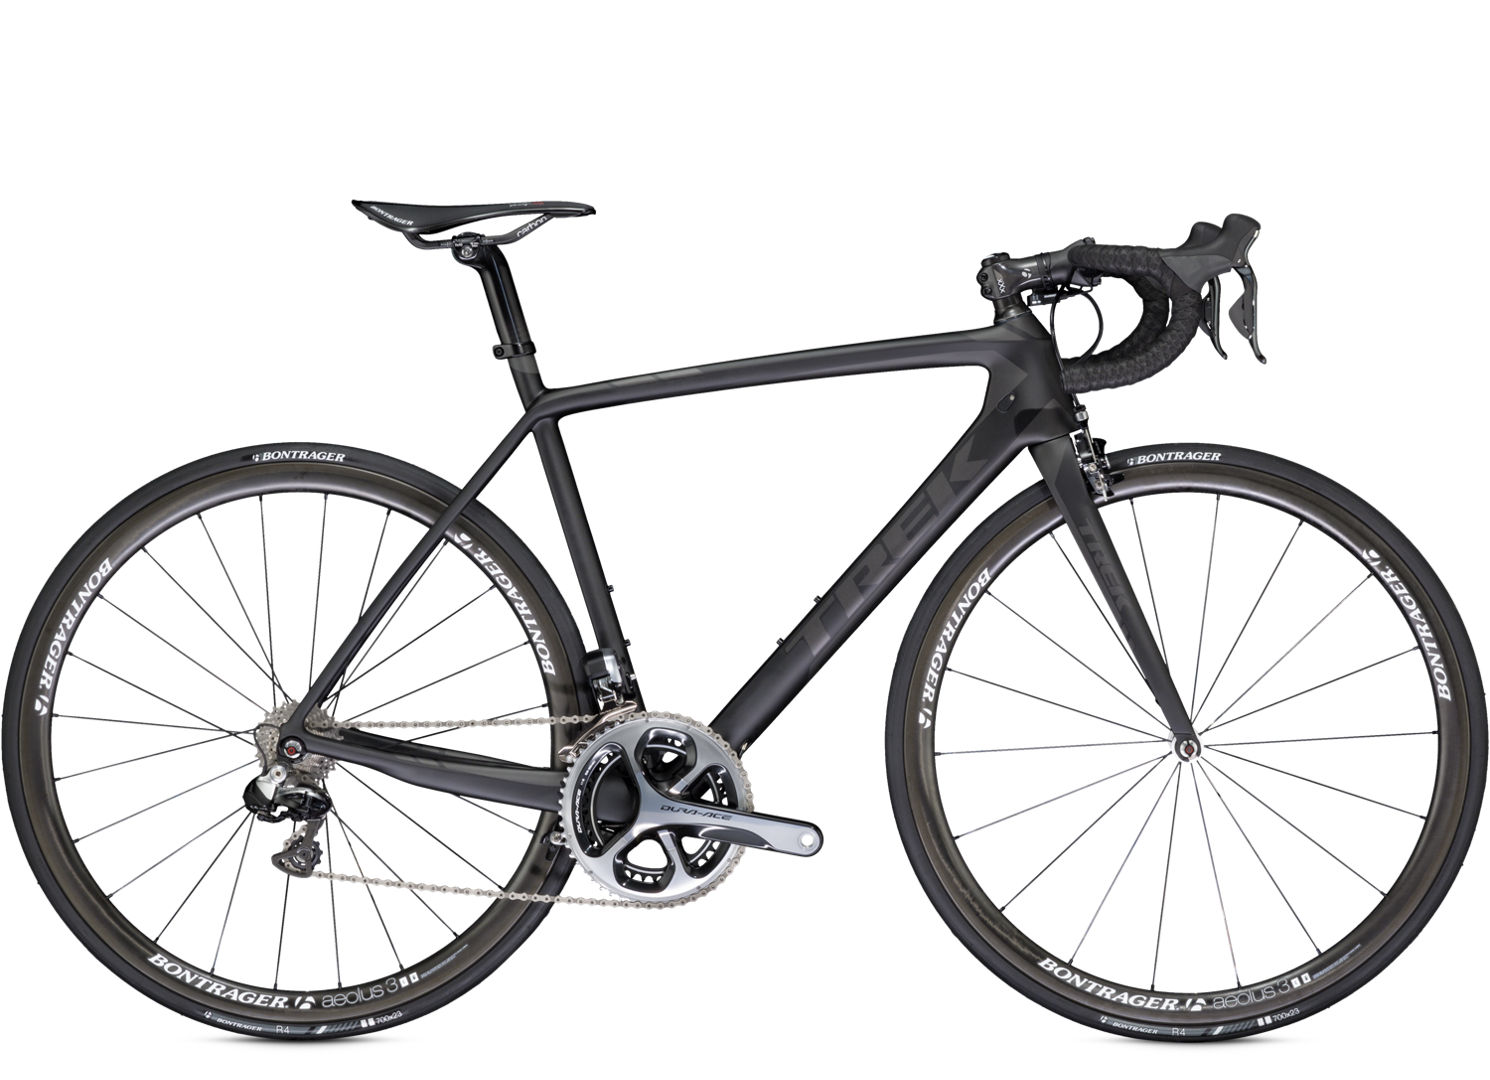 Trek Madone 7 Series Project One H2 Geometry 2015 Review